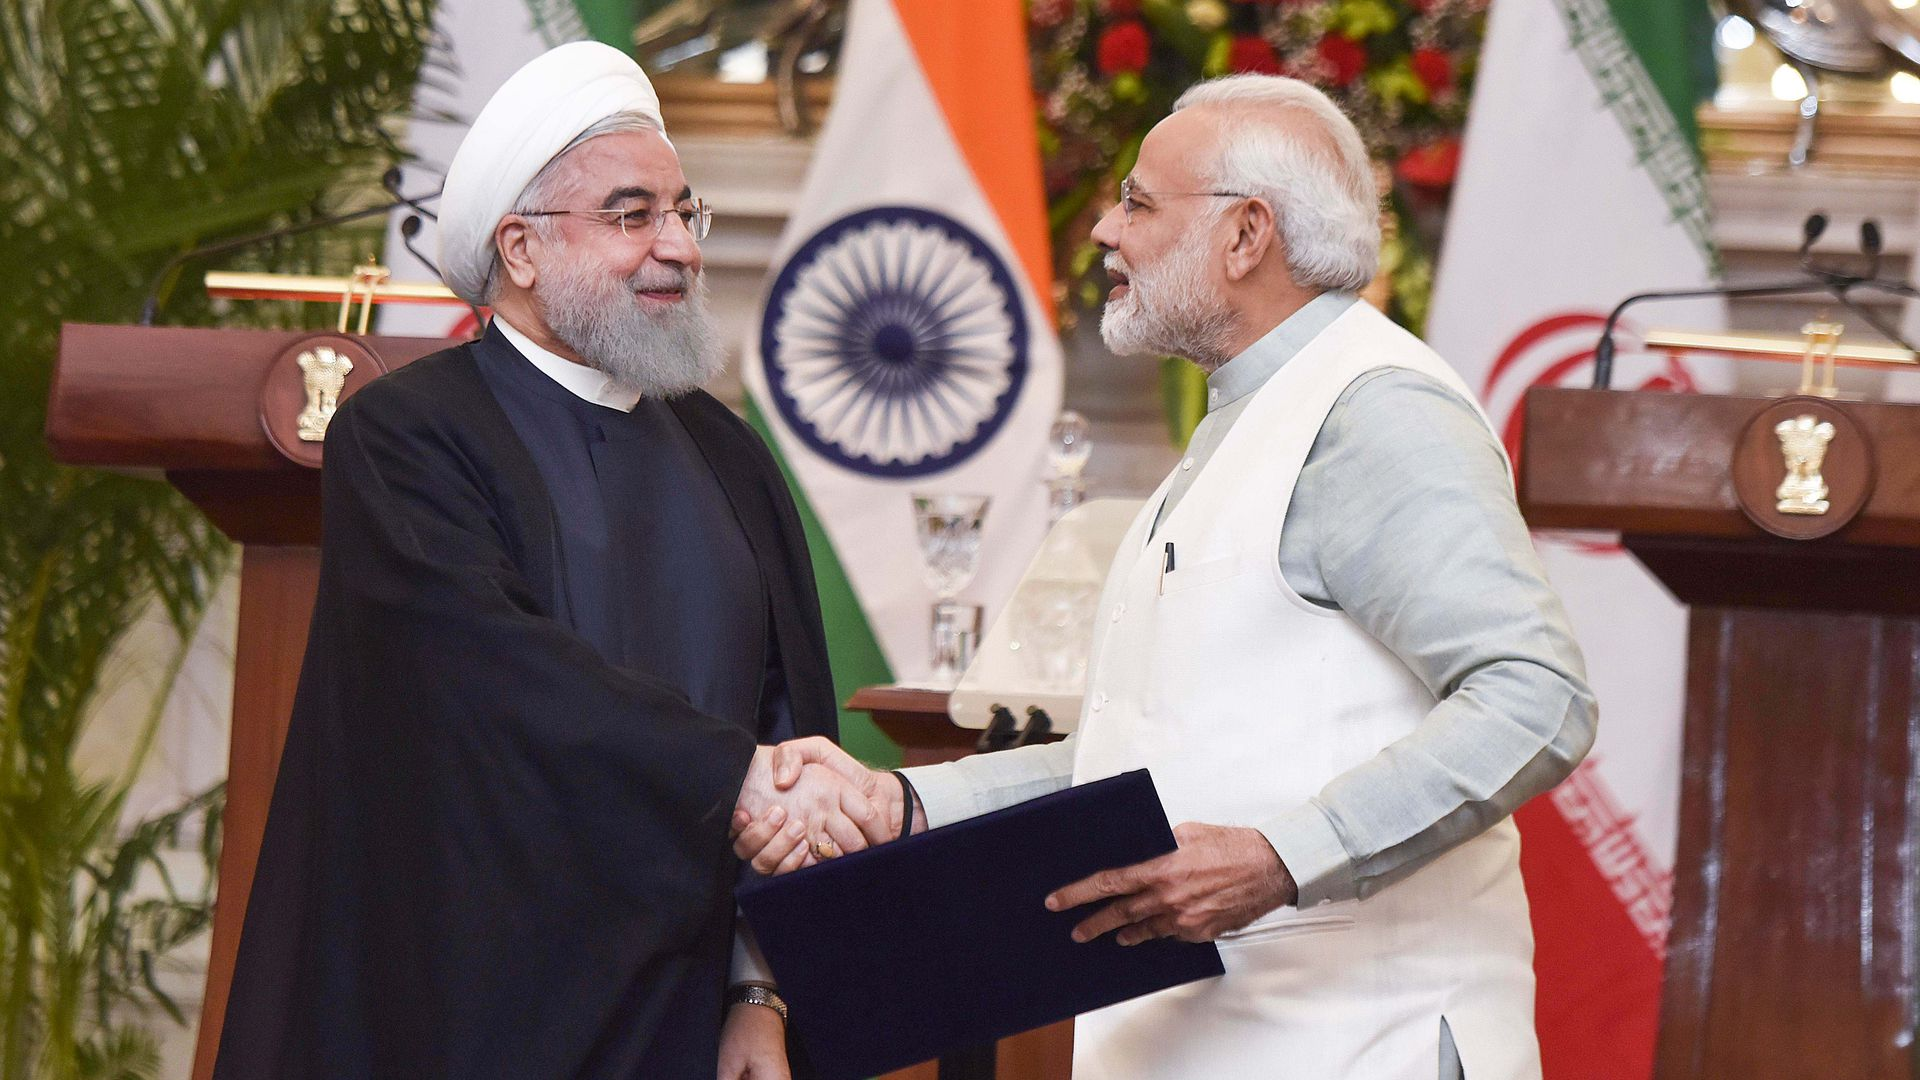 Iran President Dr. Hassan Rouhani with PM Narendra Modi after releasing commemorative stamp at Hyderabad House, on February 17, 2018 in New Delhi